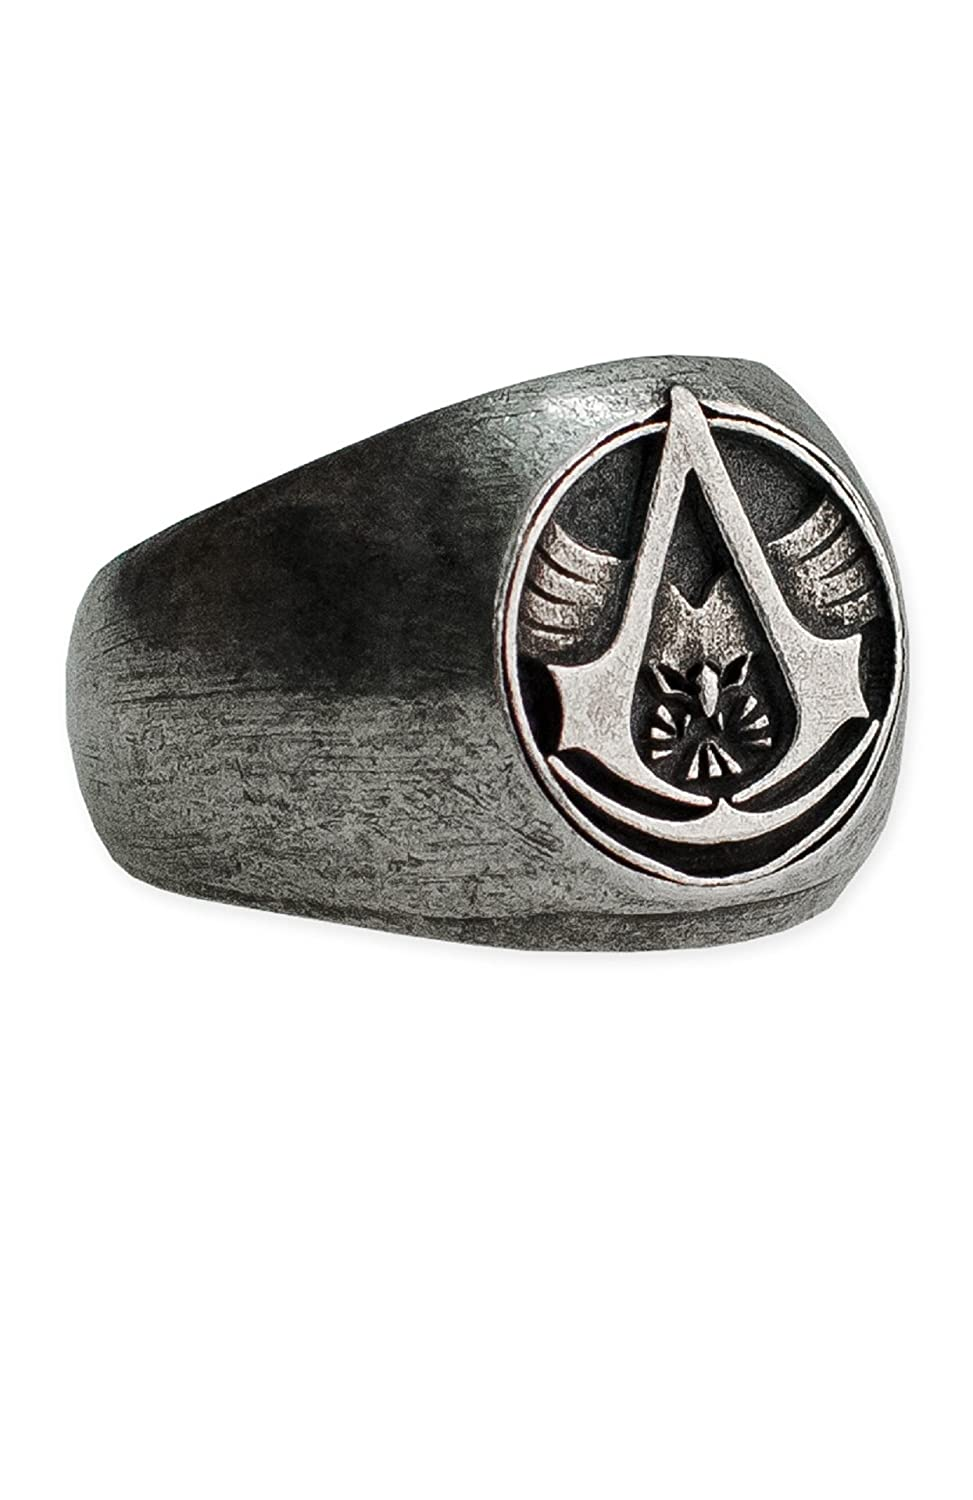 Assassin's Creed Master Assassin Ring - DeluxeAdultCostumes.com